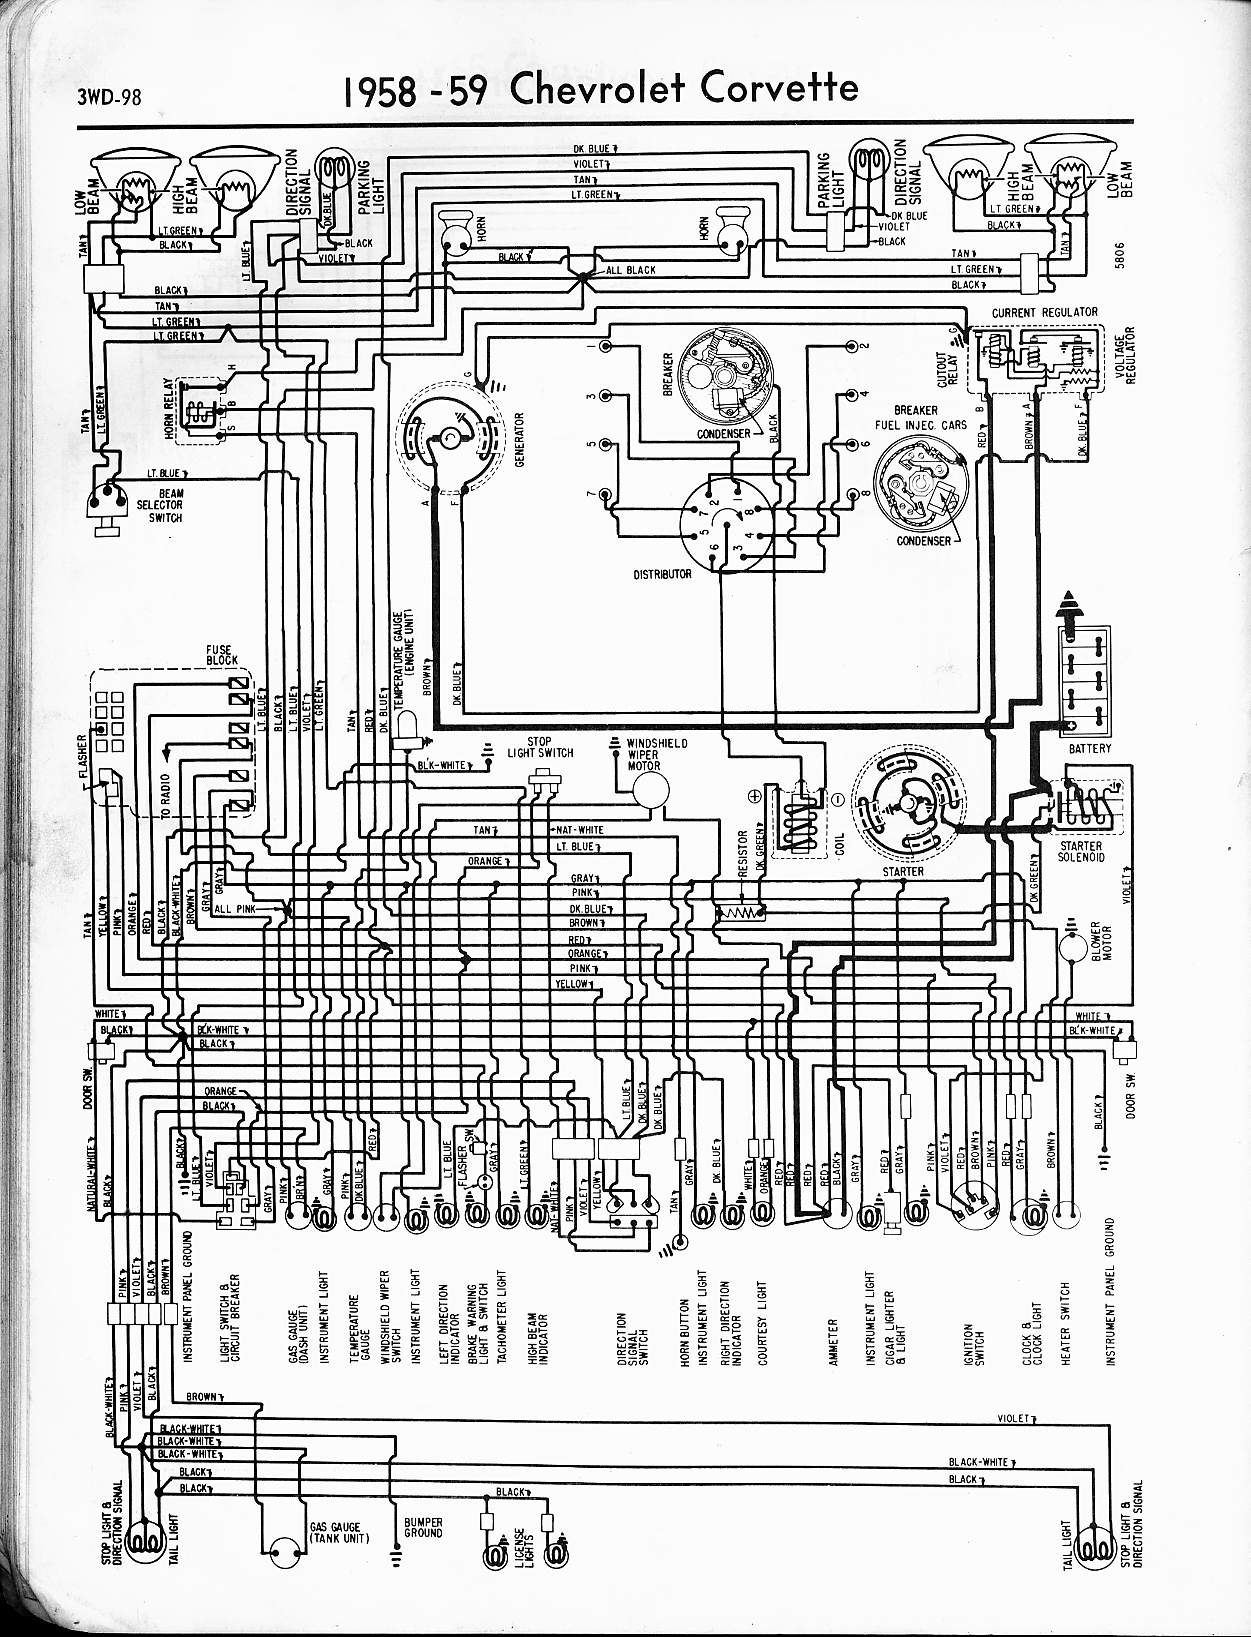 Chevy Wiring Library Comfortstar Heat Pump Diagrams 1958 Corvette 57 65